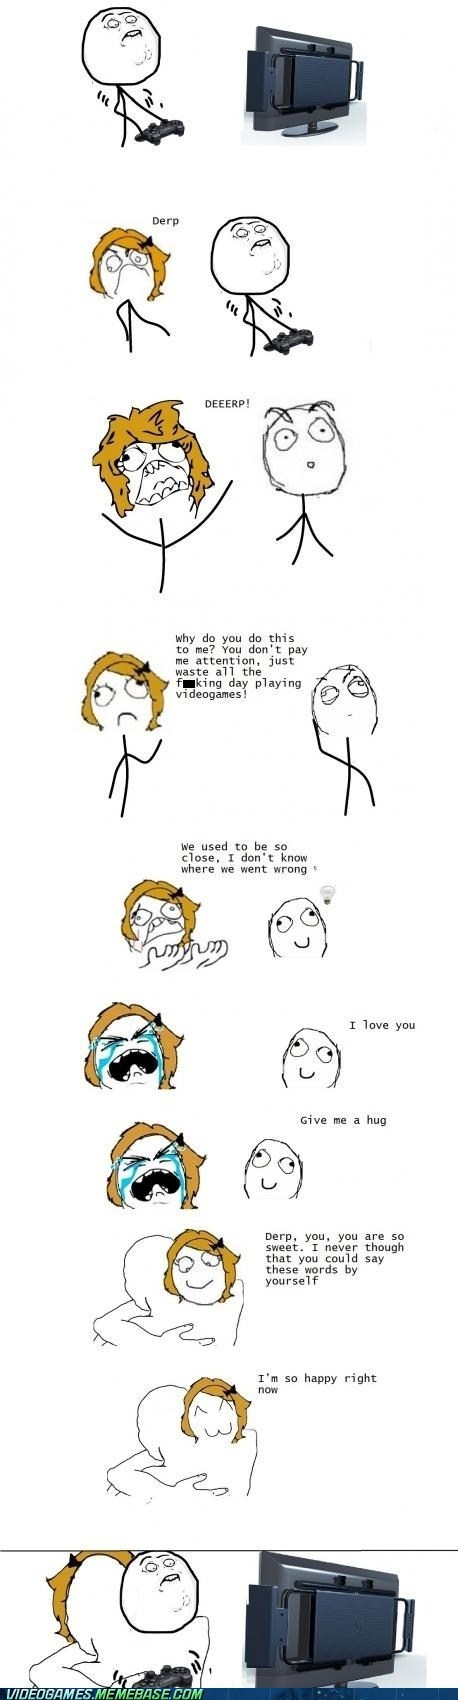 couple,hug,rage comic,relationships